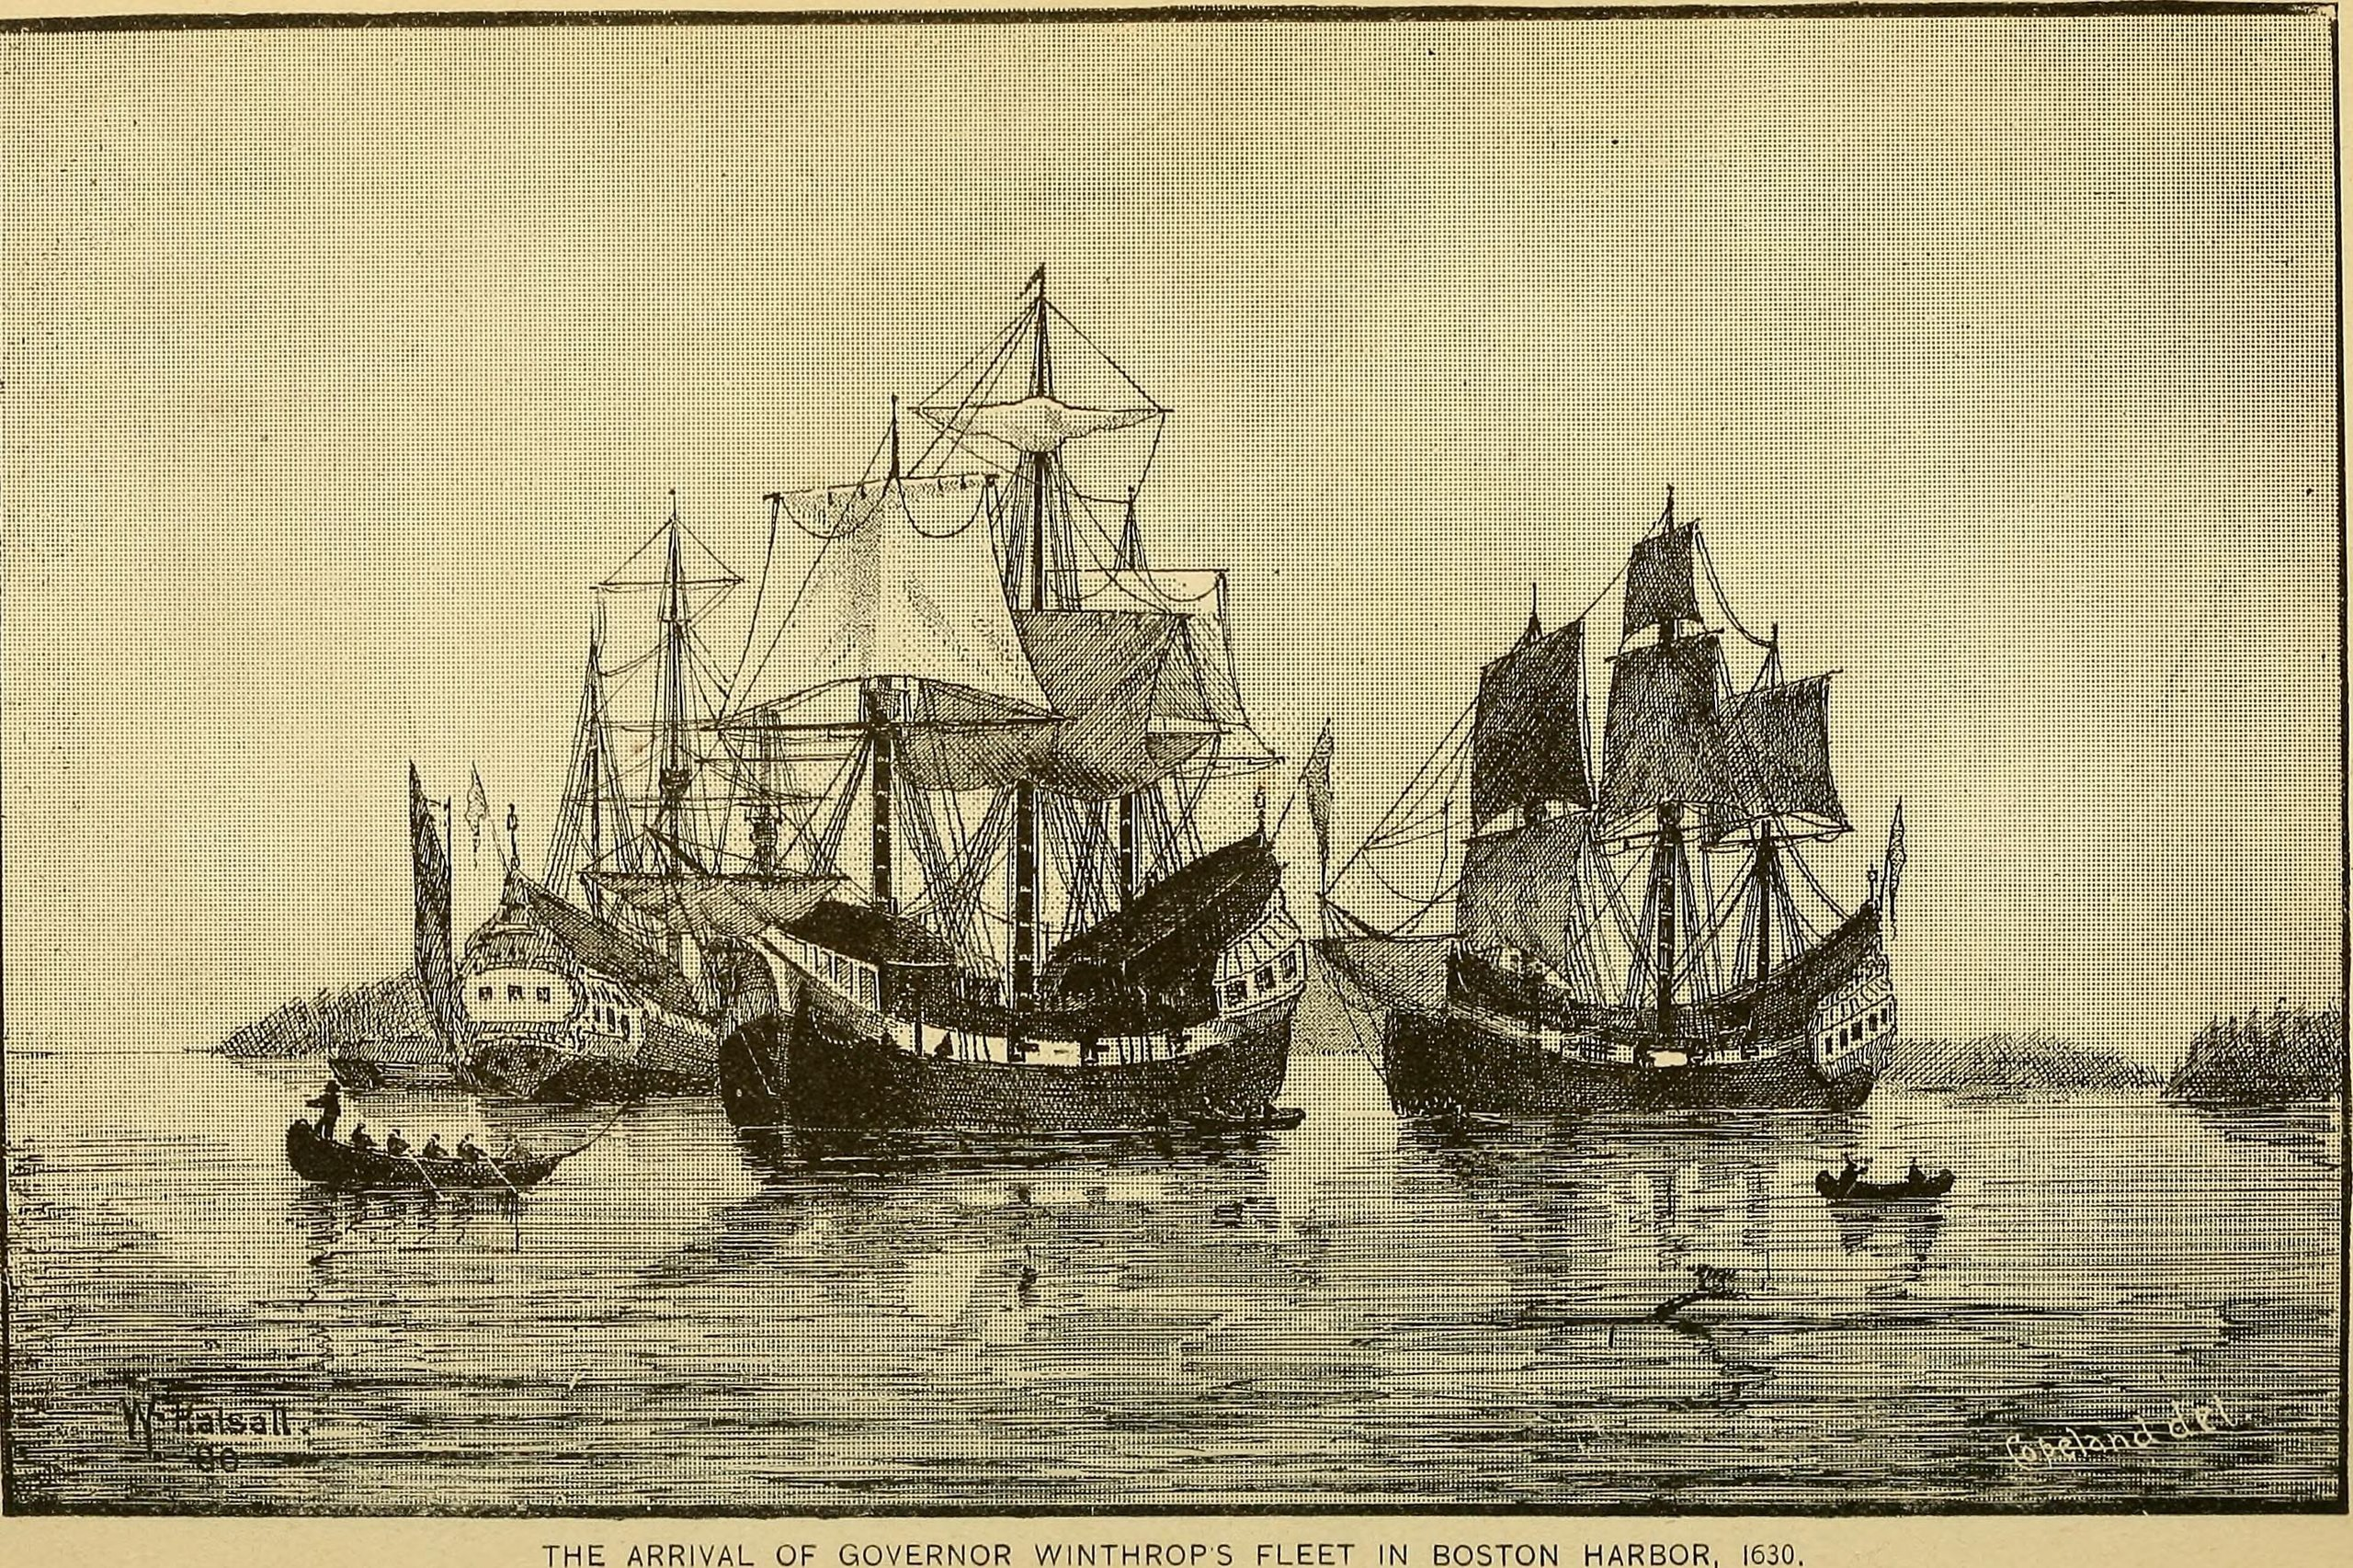 Engraving shows boats coming into harbor, reading THE ARRIVAL OF GOVERNOR WINTHROPS FLEET IN BOSTON HARBOR, 1630